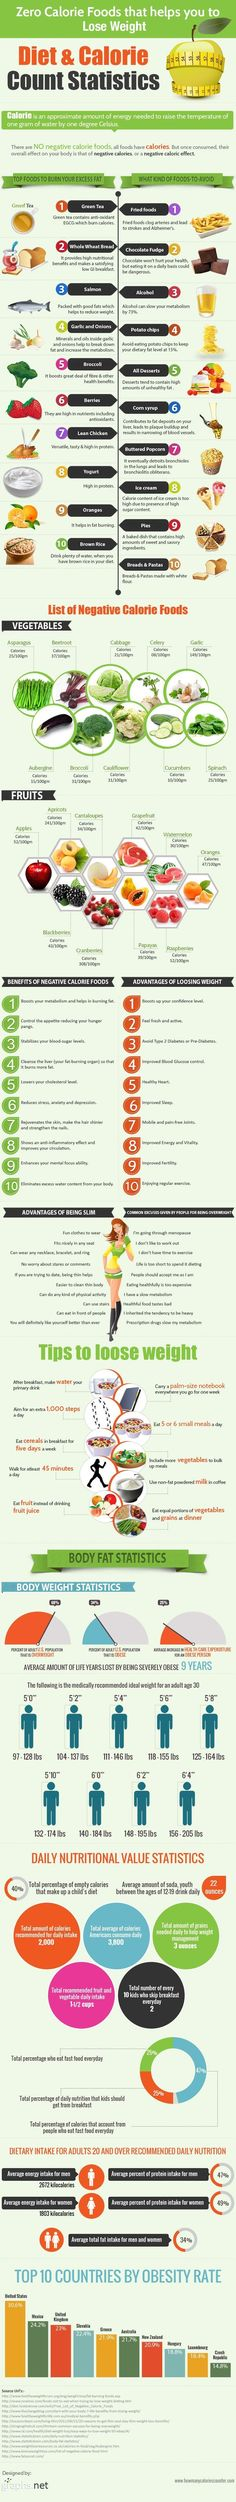 """HEALTHY FOOD - """"Diet and Calorie"""" - """"Lose Weight With These #ZeroCalorie Foods 